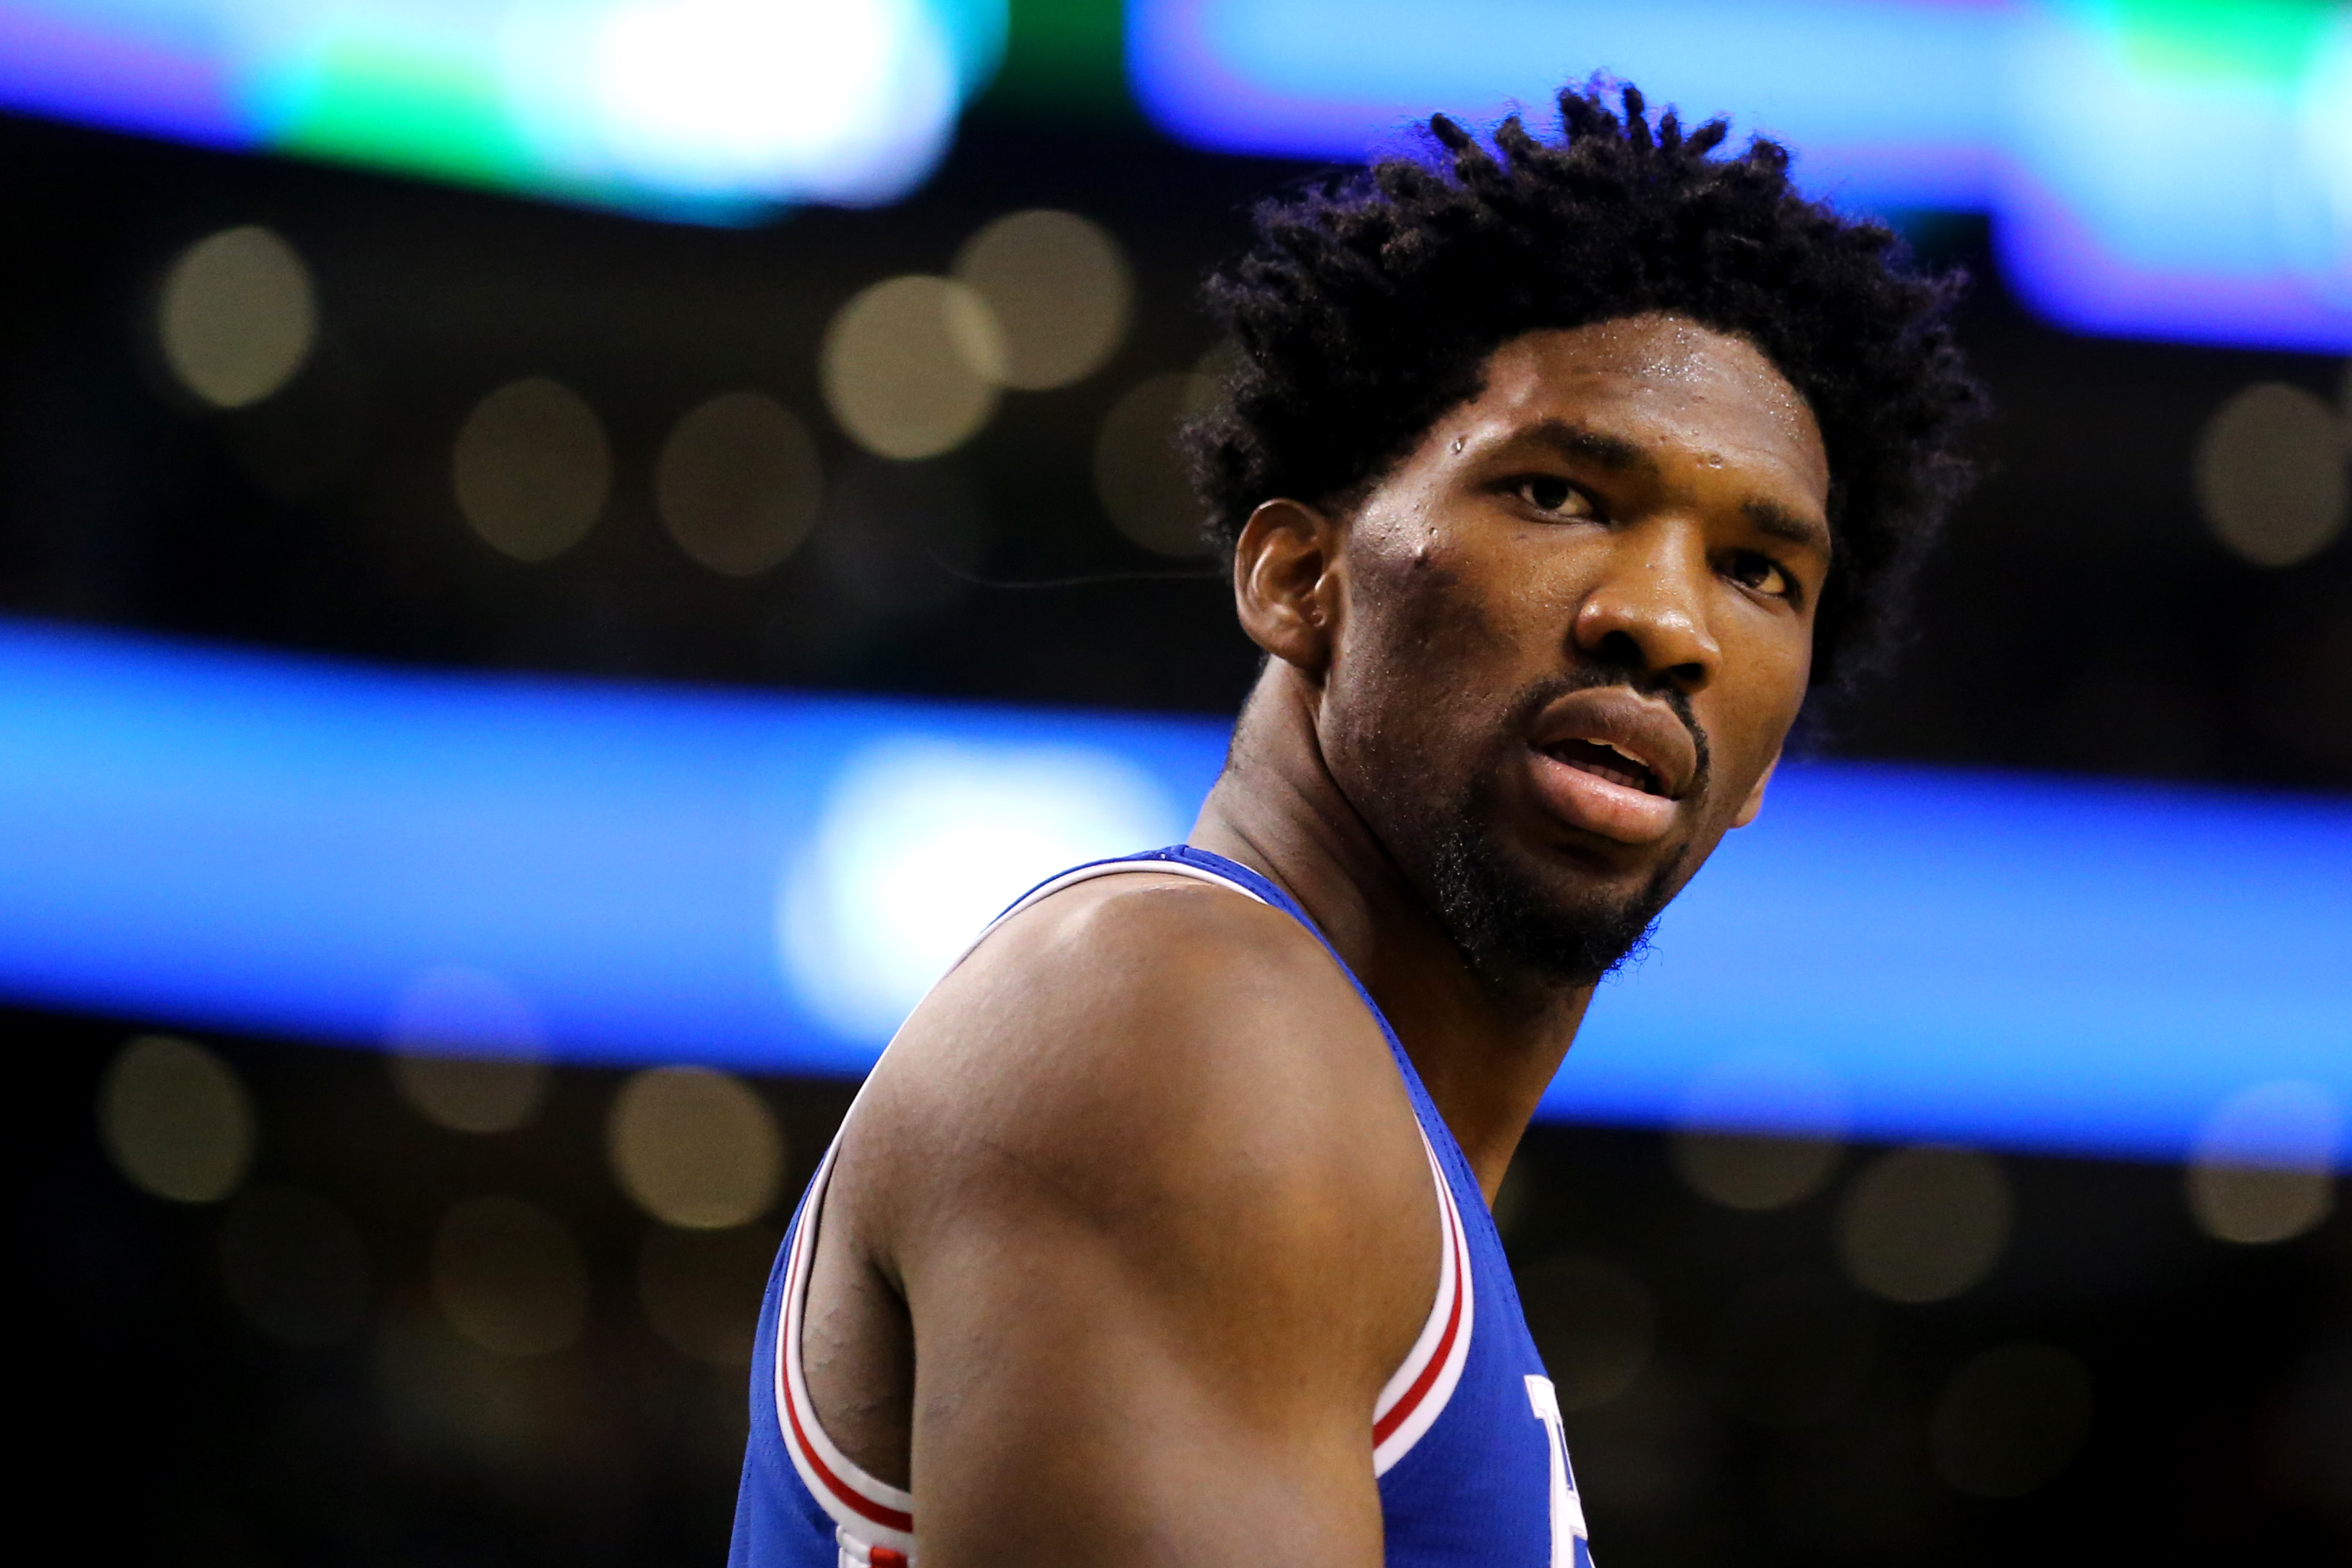 Joel Embiid has beef with his 'NBA 2K18' rating